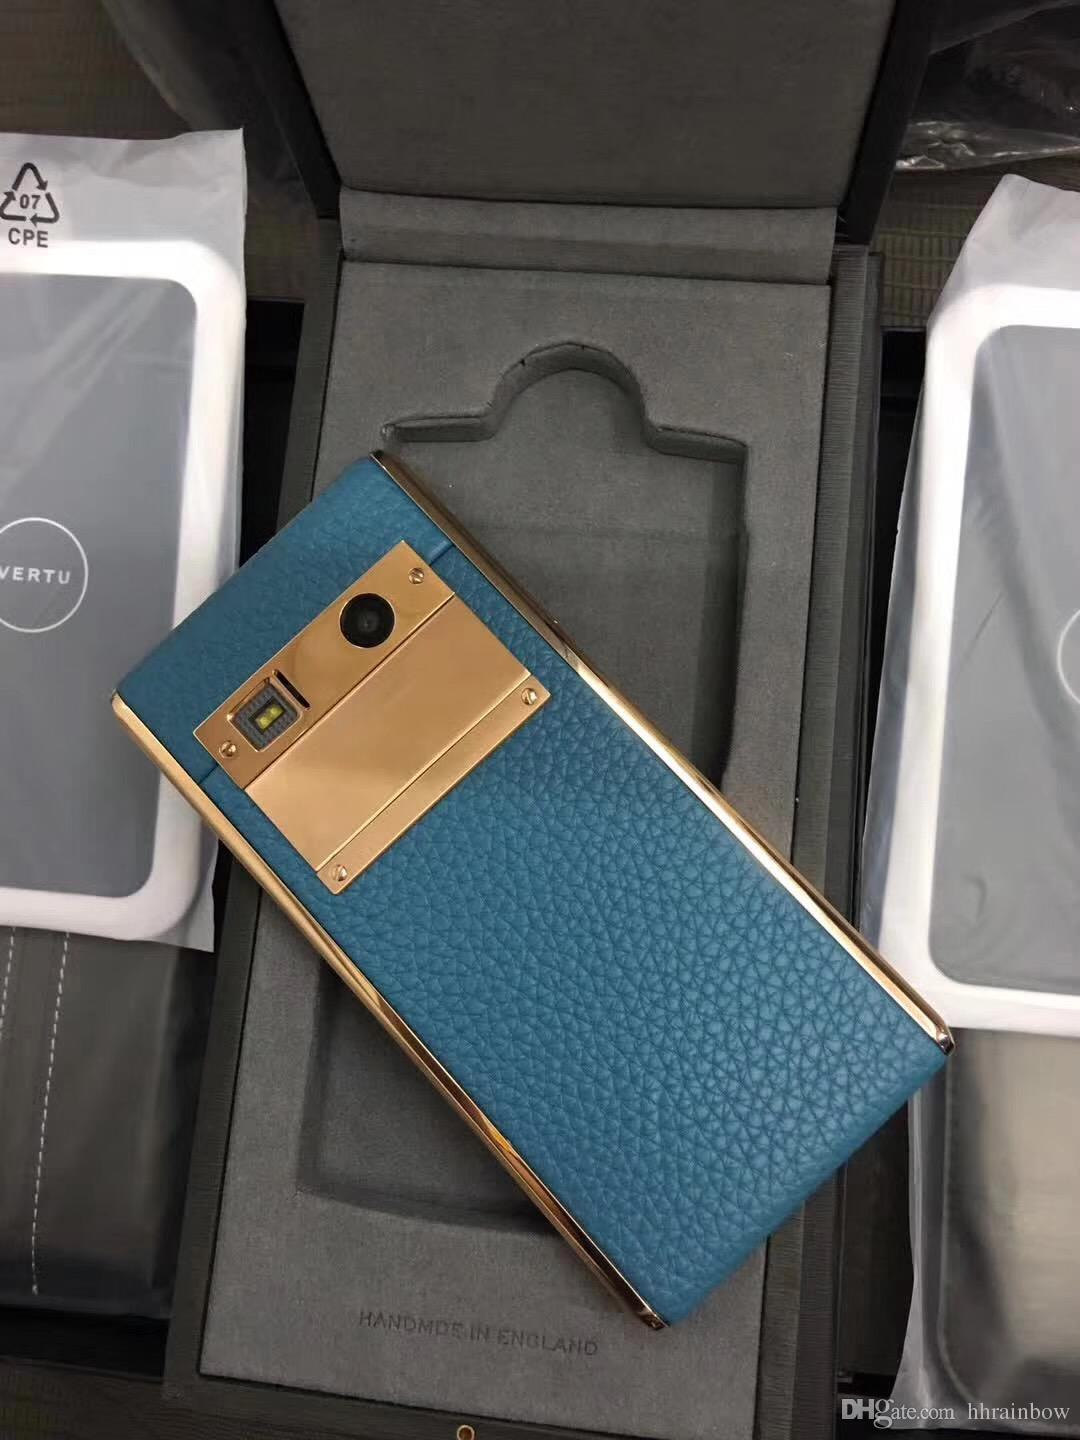 Brand New Vertu ASTER 4.7 inch Luxury Smartphone with most reasonable price, Full metal body with CEO alligator skin Customization